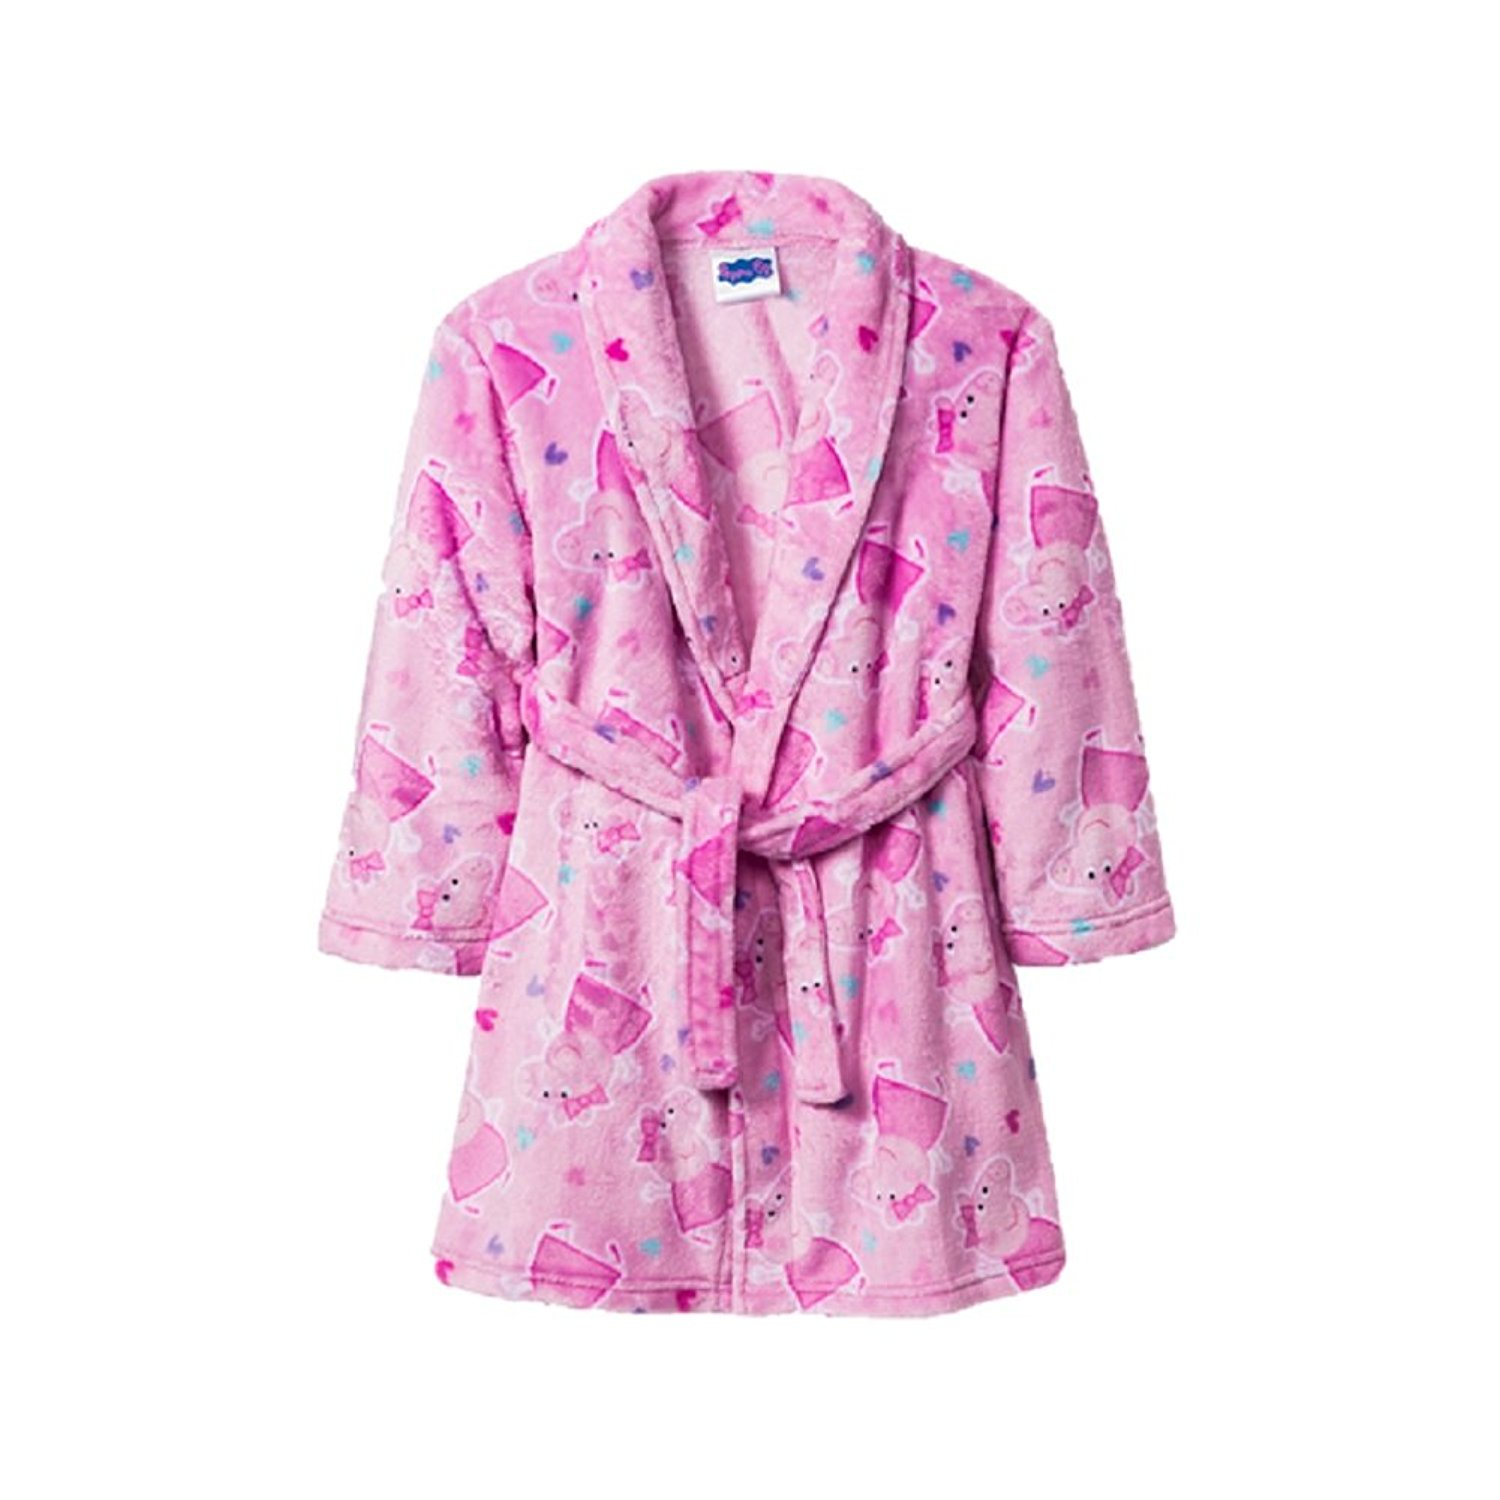 Pottery Barn Kids' bathrobes for kids are plush and perfect for cool winter months. Find super-soft robes and kids' pajamas and keep them cozy and warm. Pajamas & Nightgowns. Find fun prints and girly colors that are suitable for both toddlers and big girls.